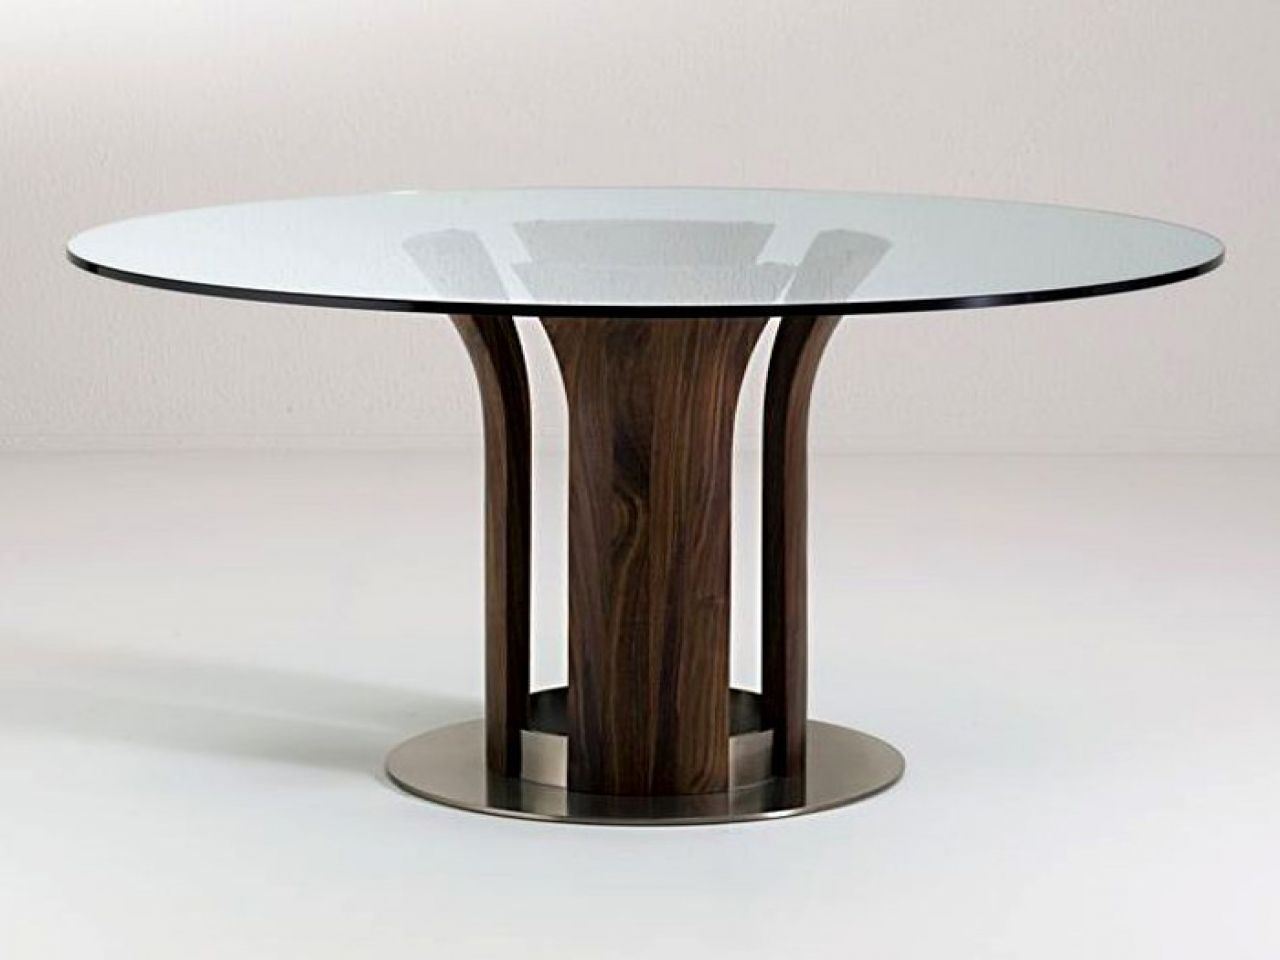 Gl Top Dining Room Sets Round Table Modern With Wooden Base